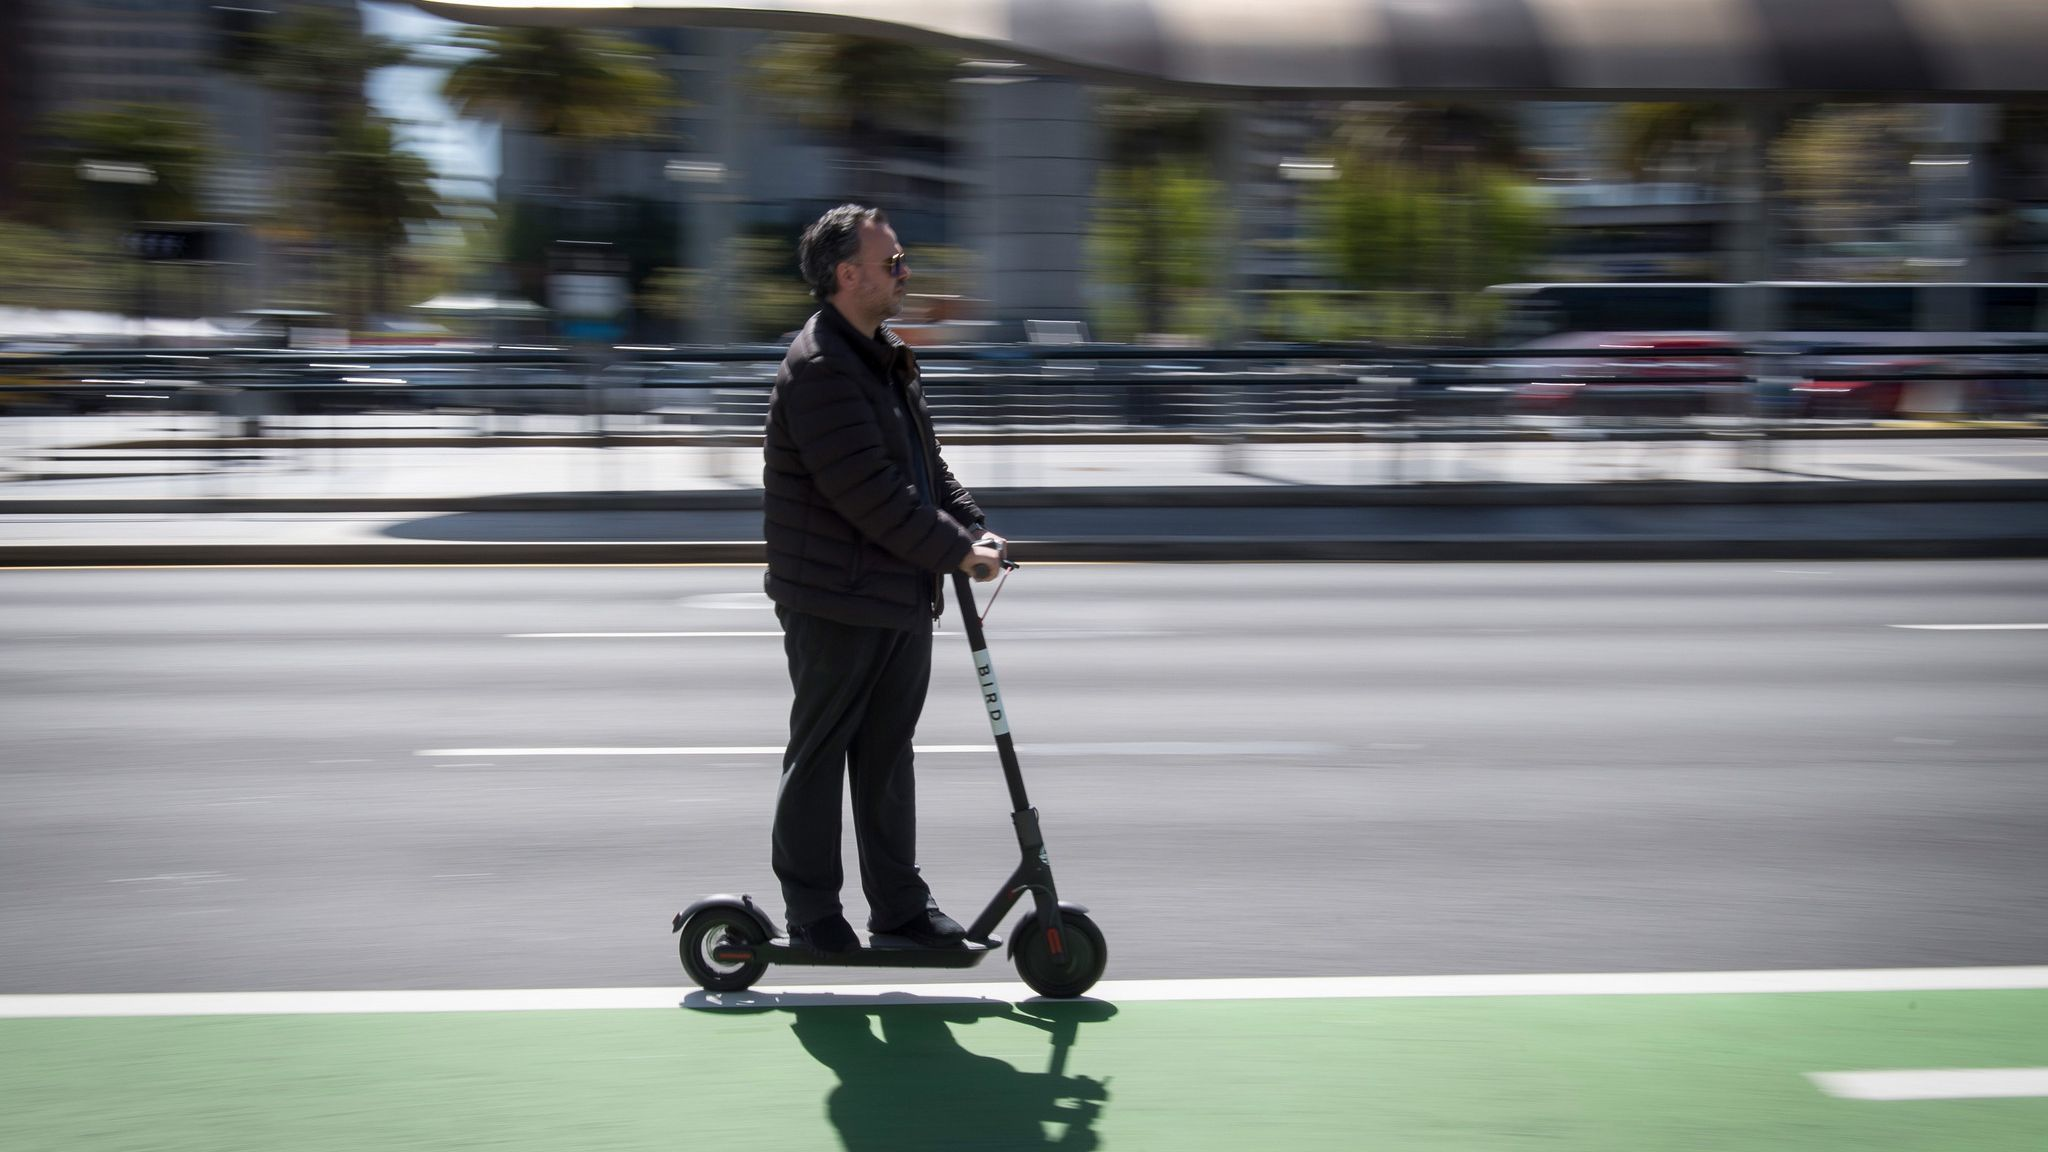 Electric scooter rentals — convenience or menace?